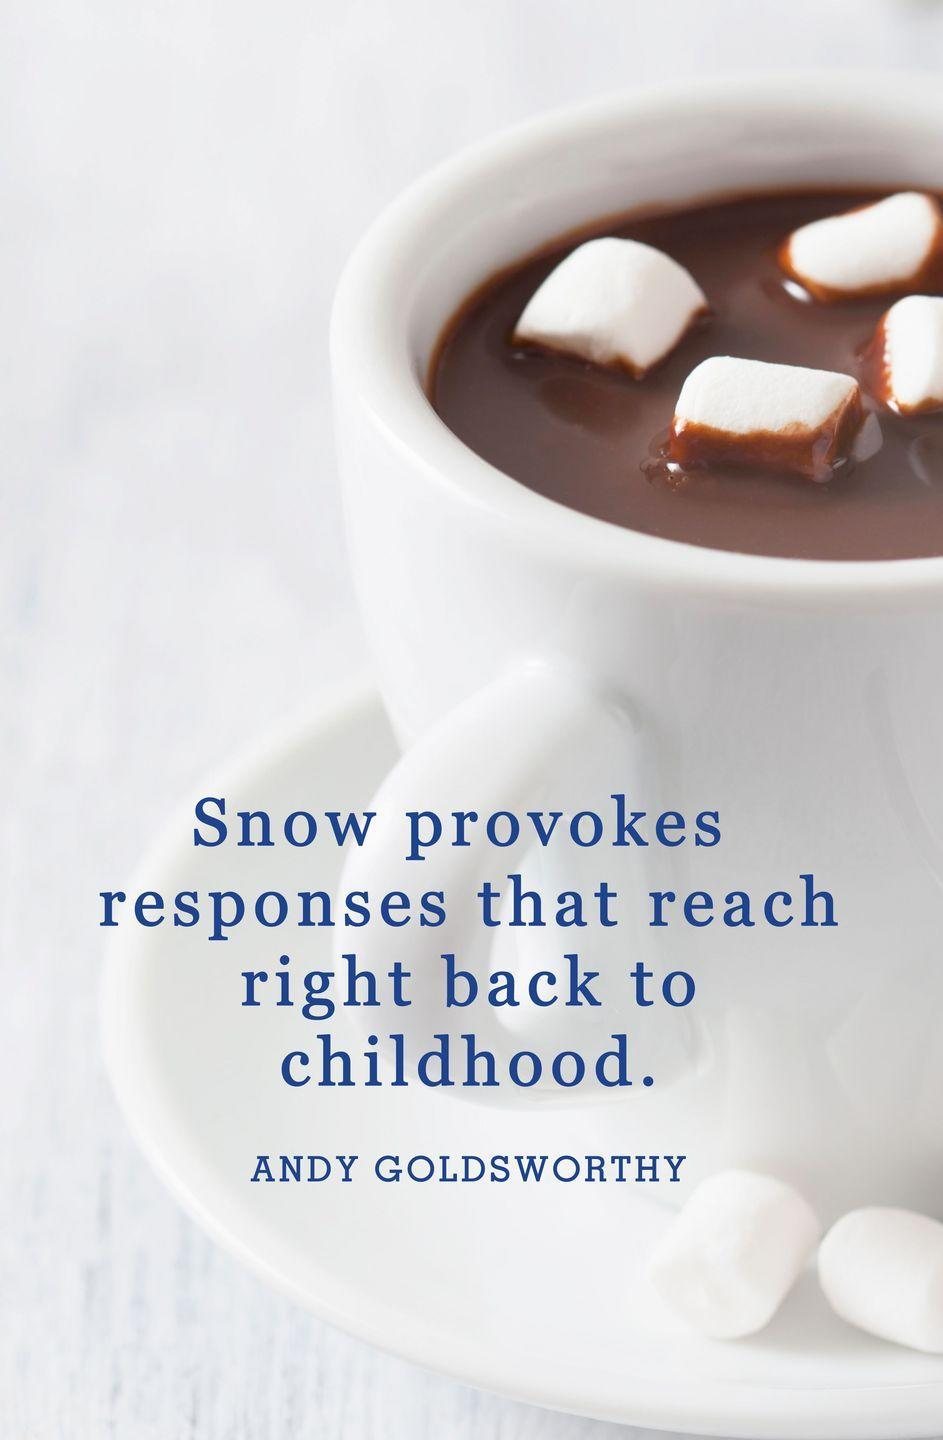 "<p>""Snow provokes responses that reach right back to childhood.""</p>"